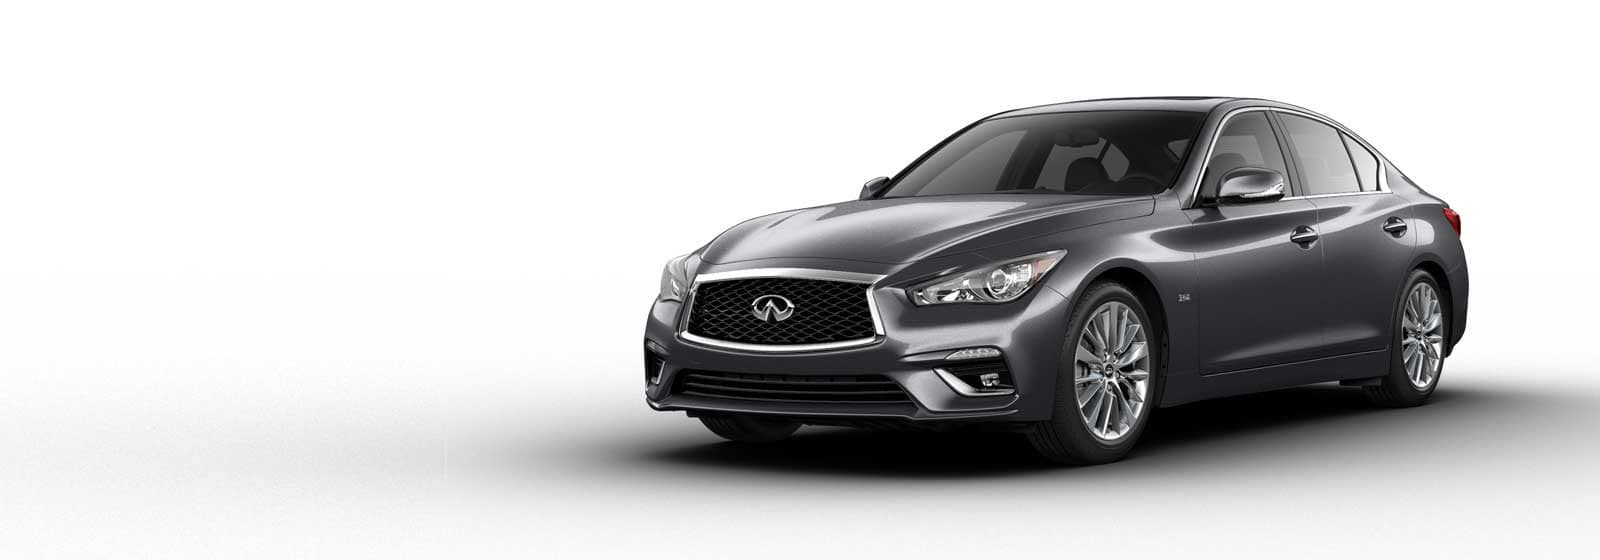 Luxury Cars Of Charleston >> Infiniti Dealership Charleston Sc Mount Pleasant Summerville